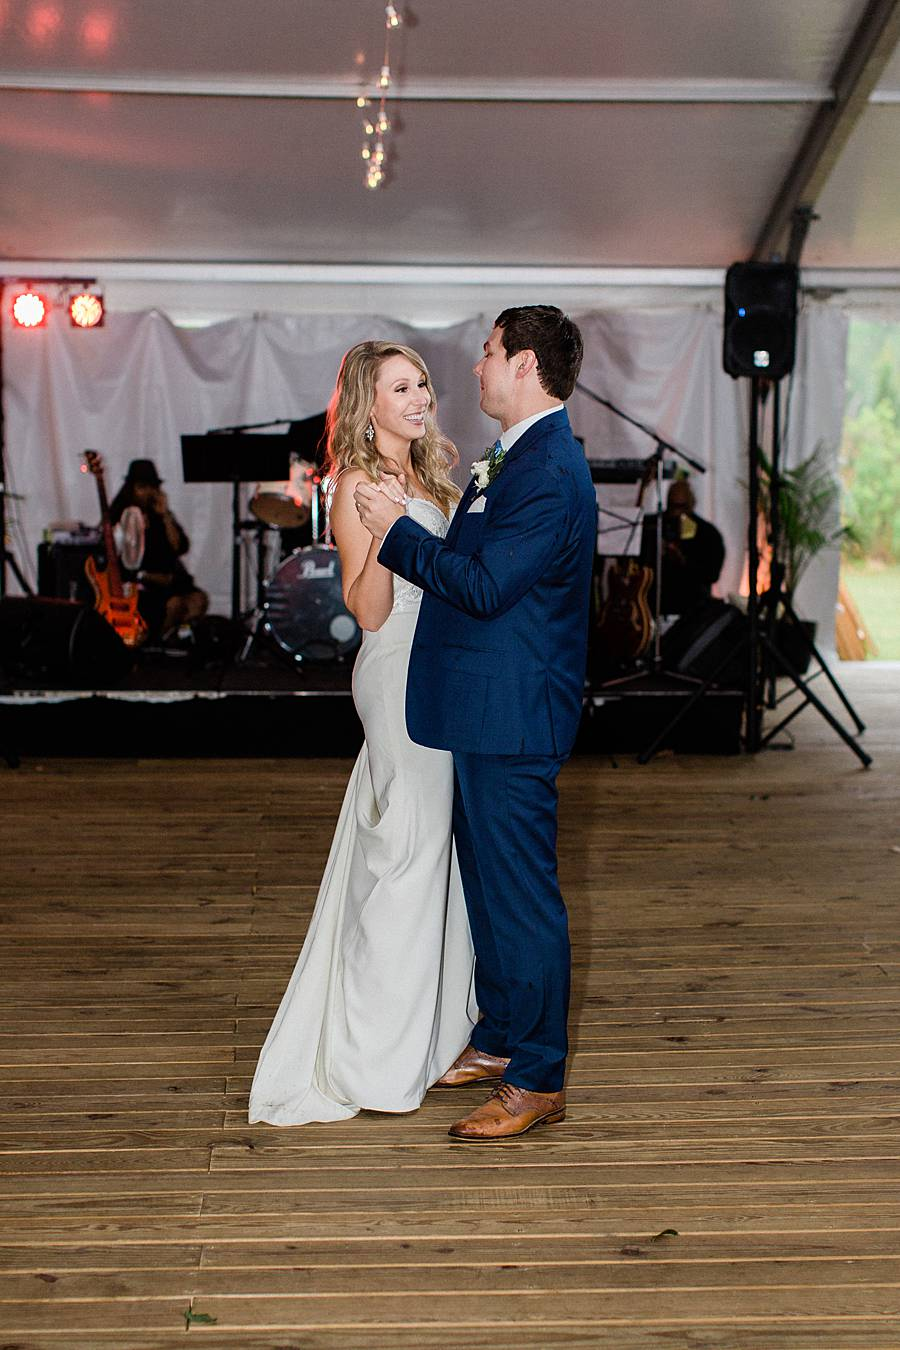 charleston runnymede april wedding 301_web